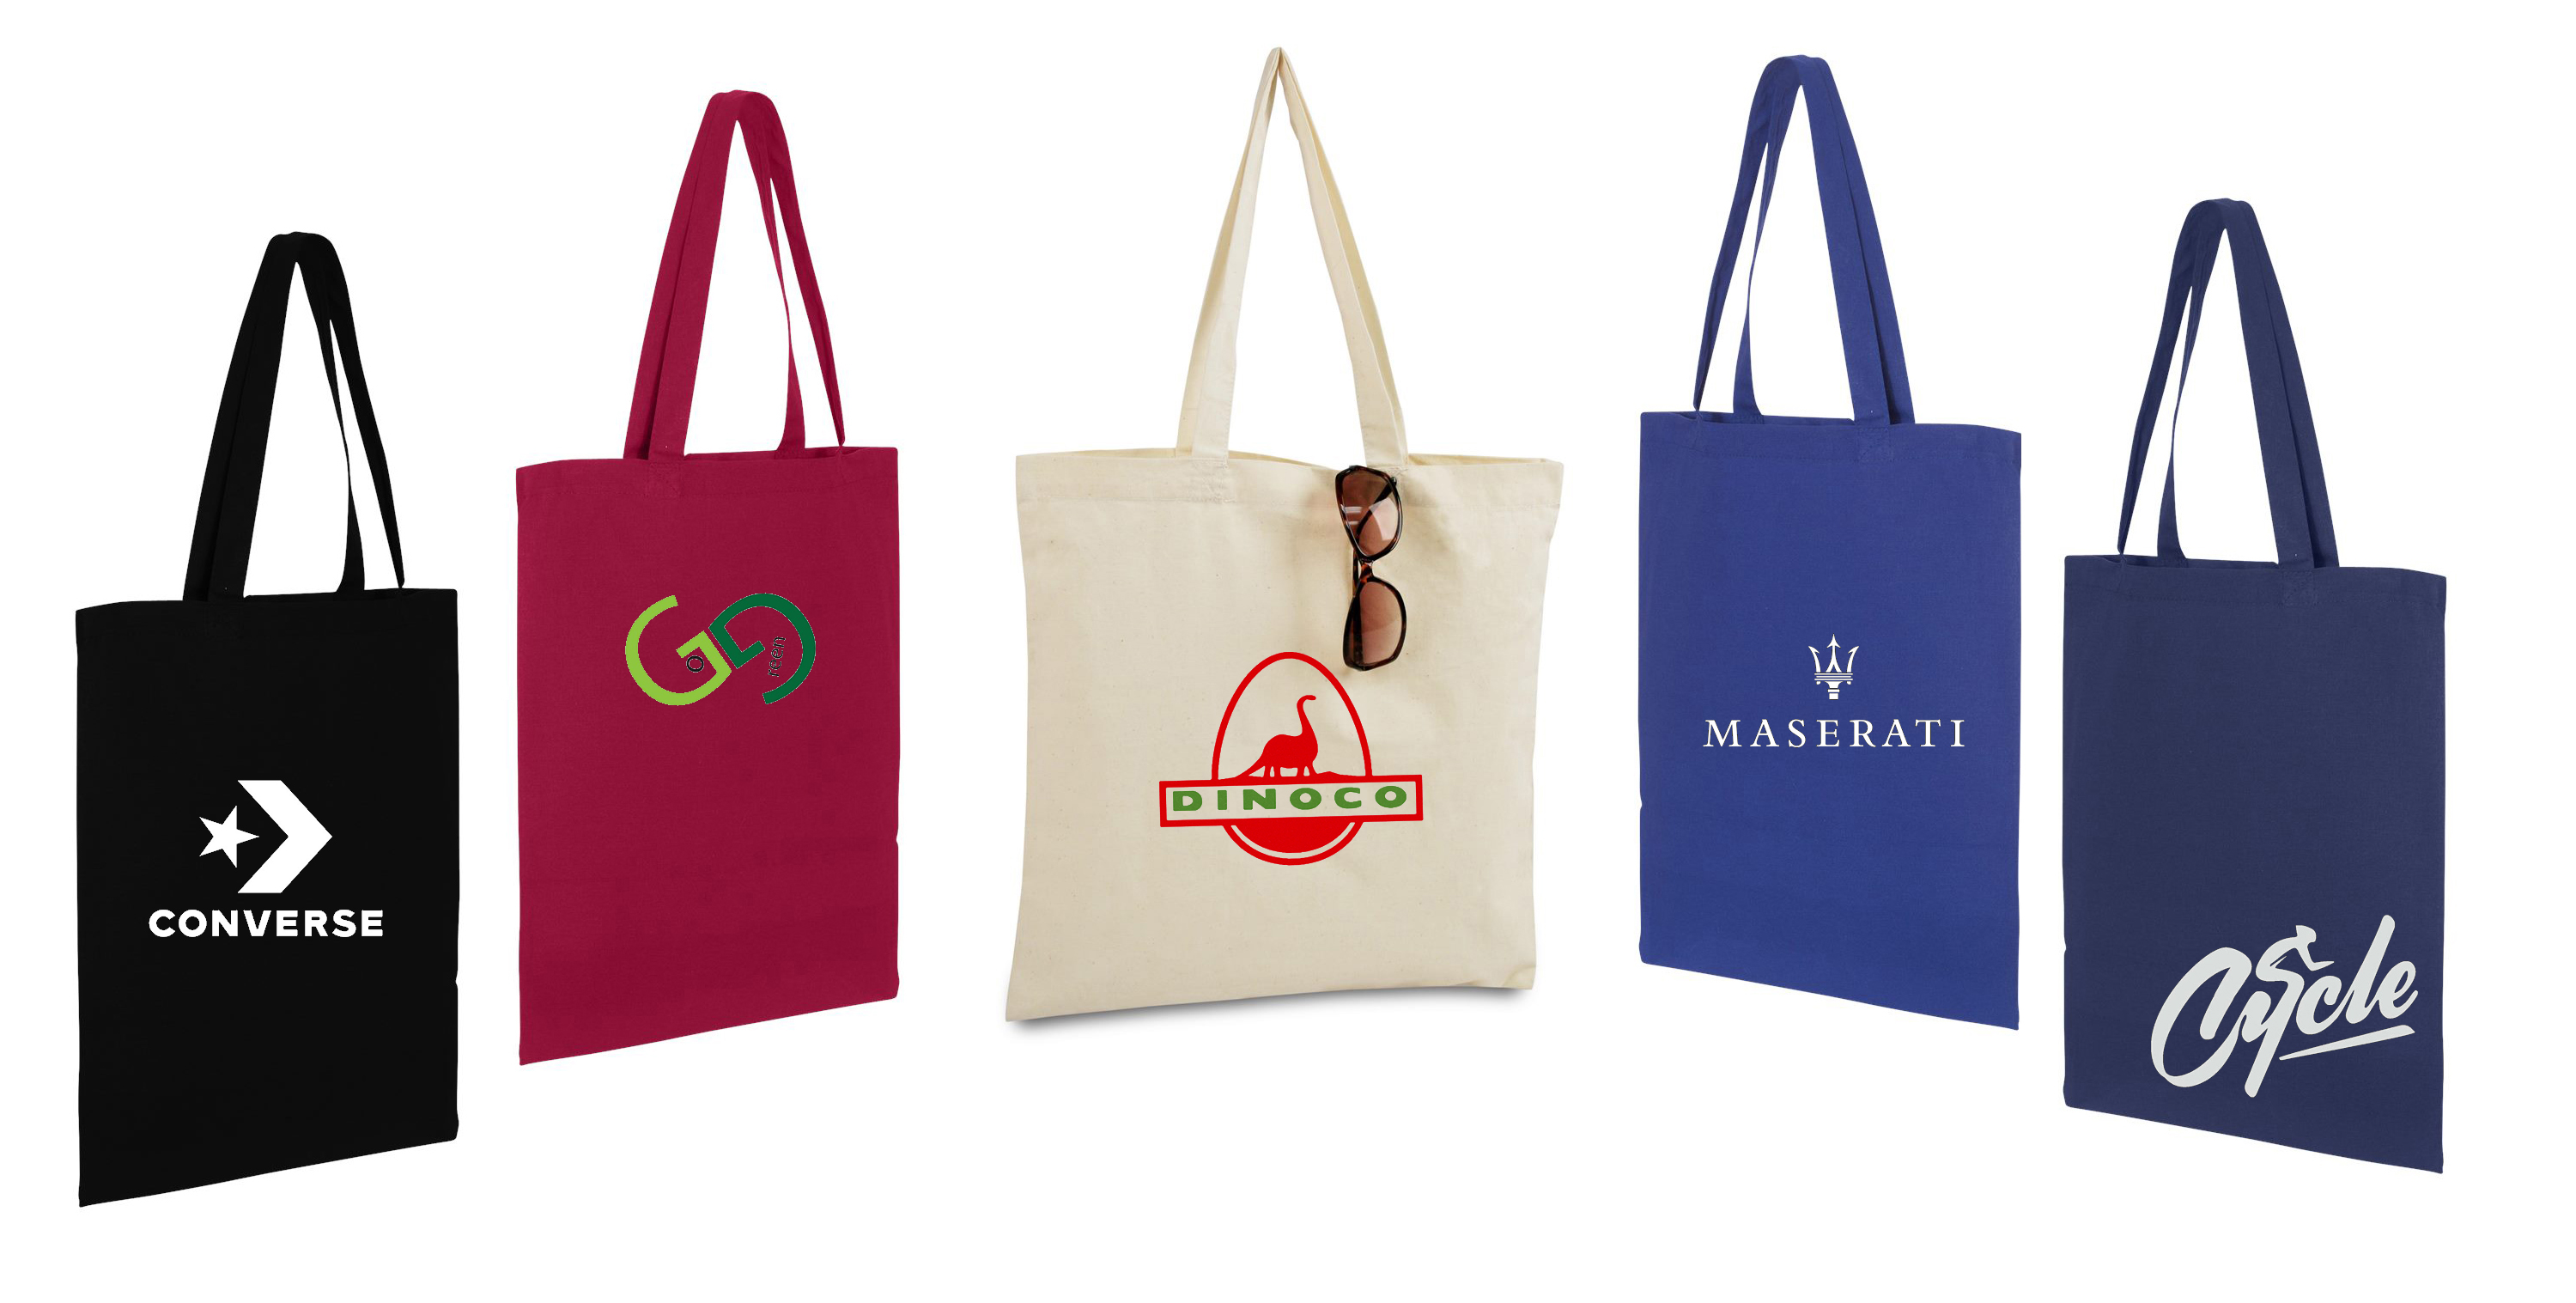 Tote bags with custom logos and decoration